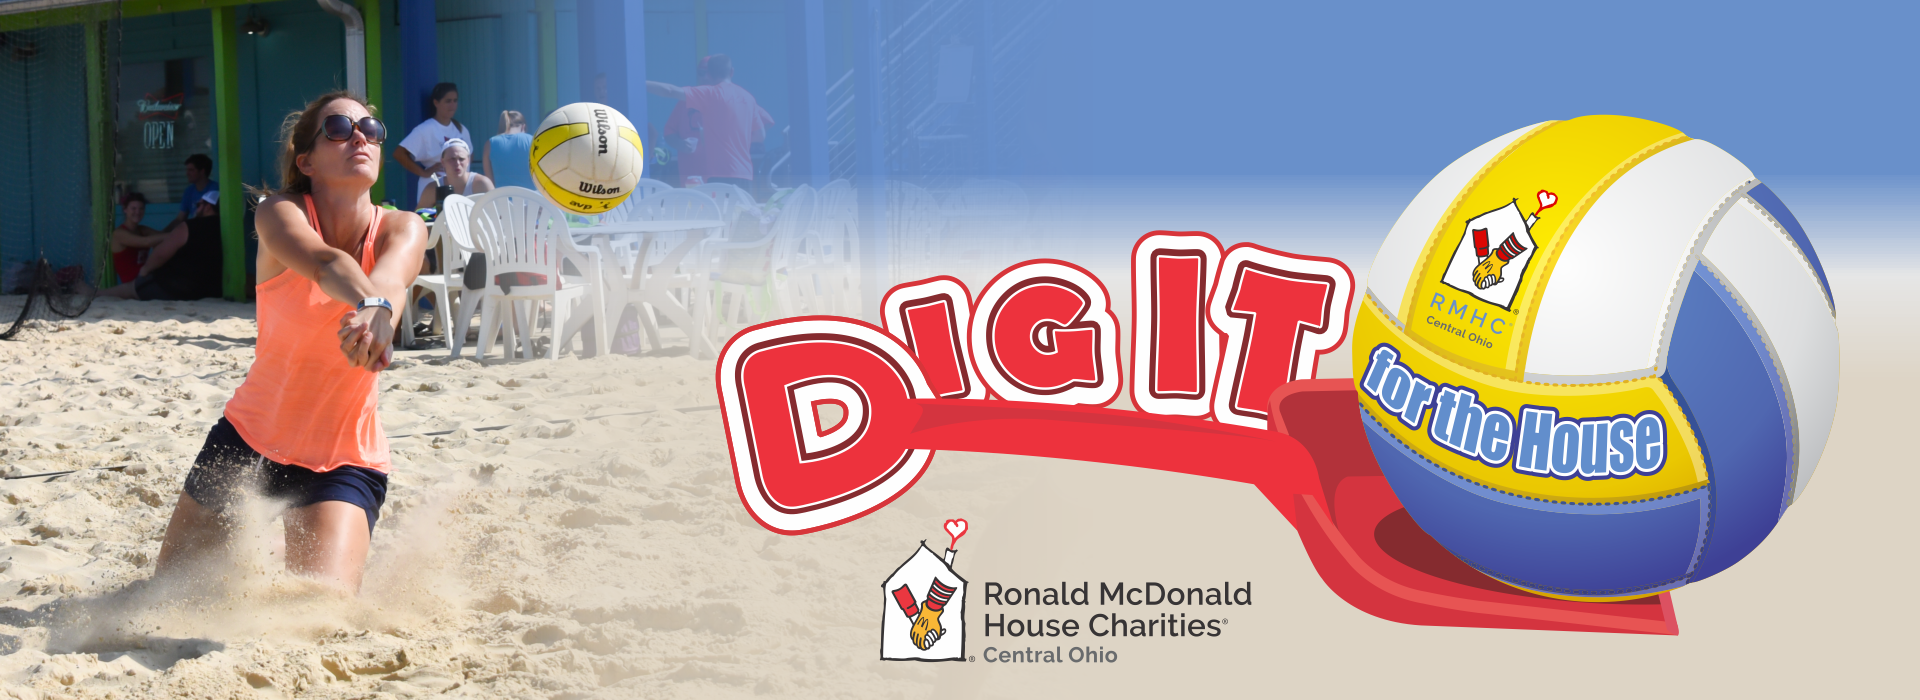 Ronald McDonald Dig It For The House Tournament